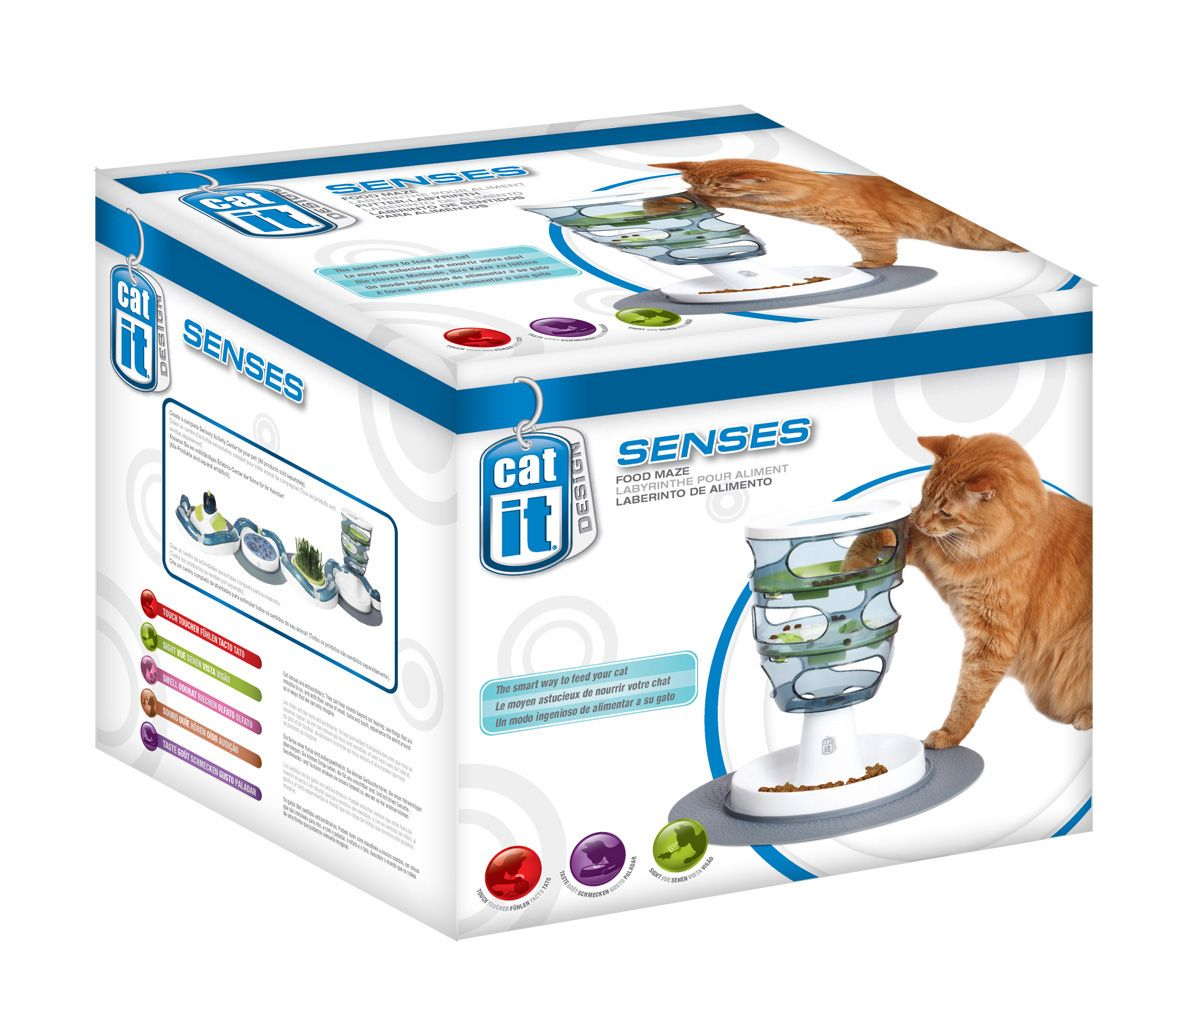 Catit Senses Food Maze £17.99 Buy a cat, Food animals